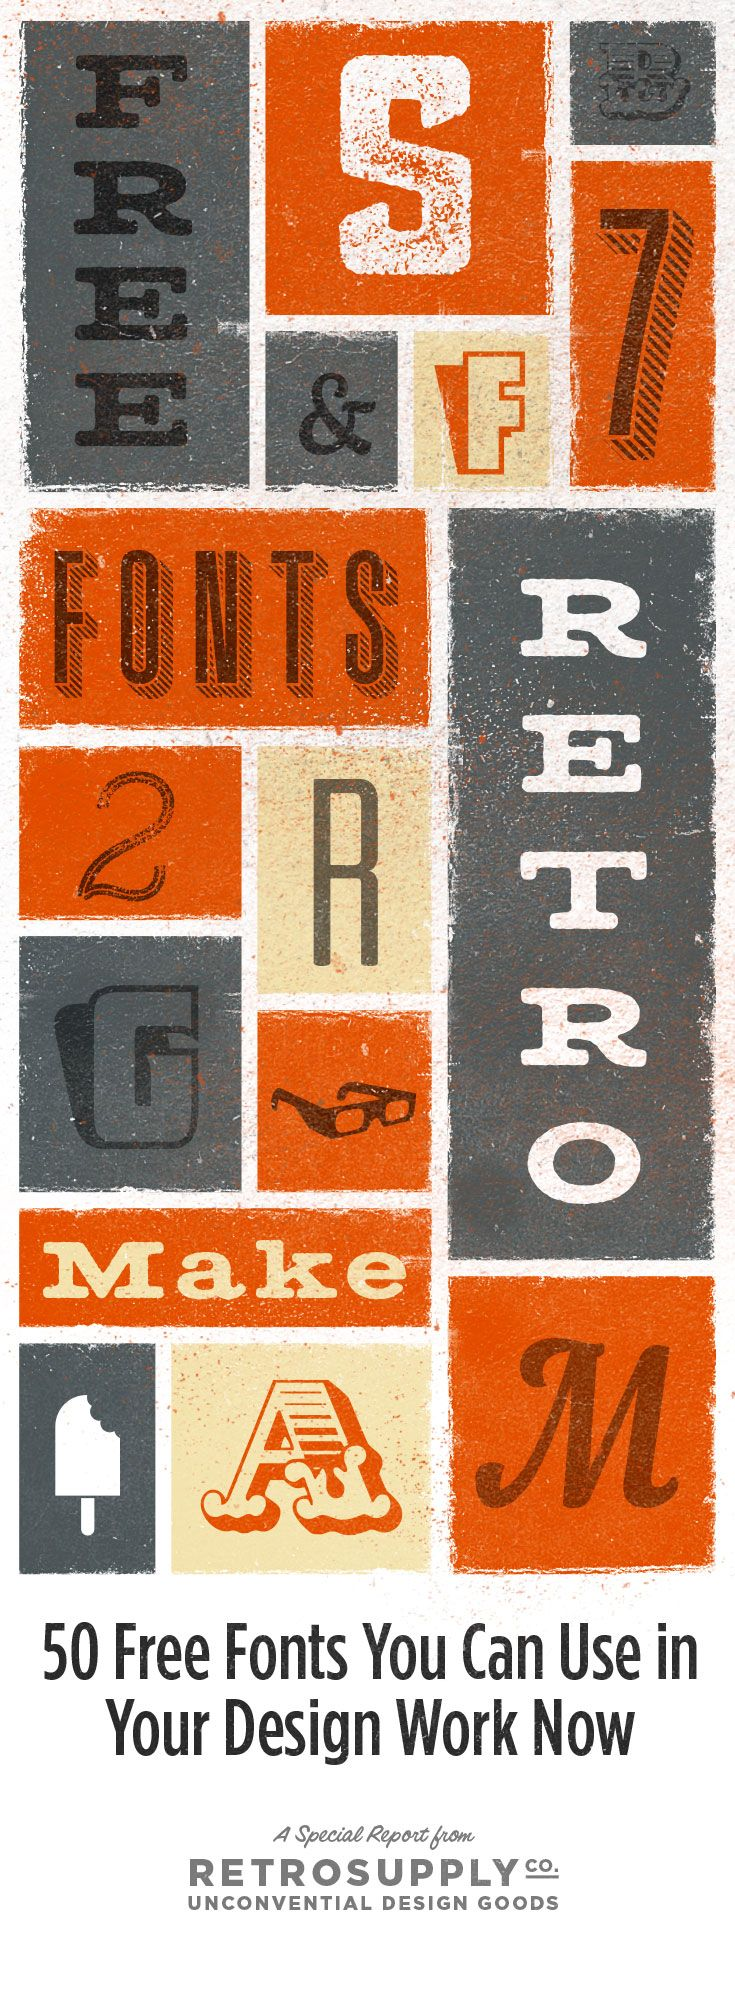 letterpress style, lettering, design, texture, retro, typeface, font, type, colour, grey and orange, male